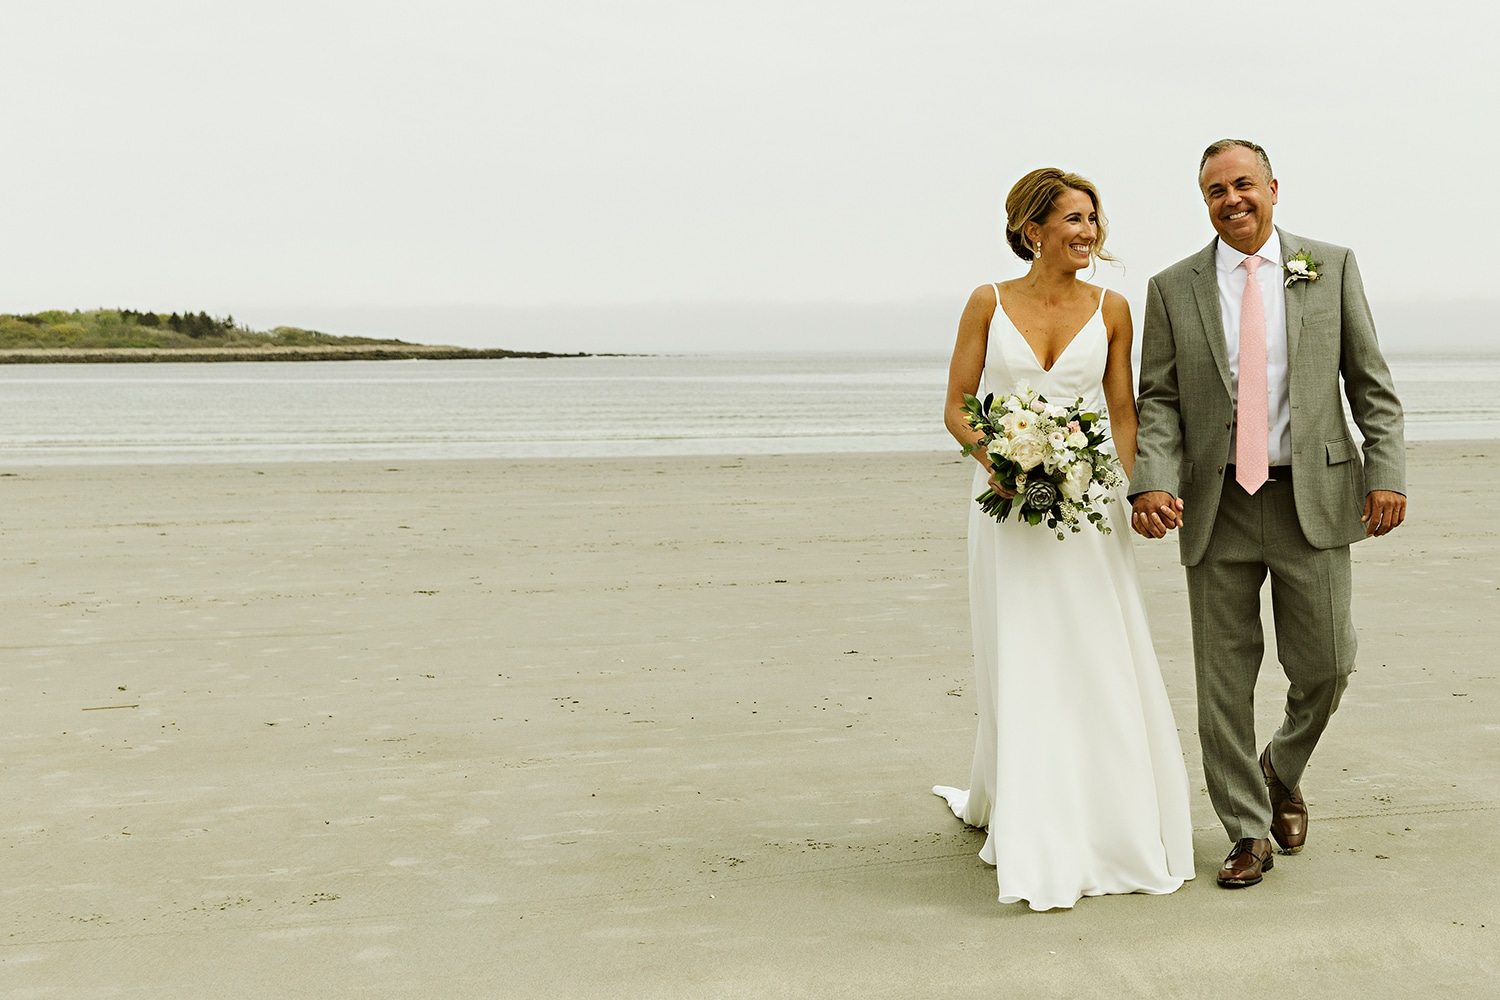 Bride and groom laughing on beach